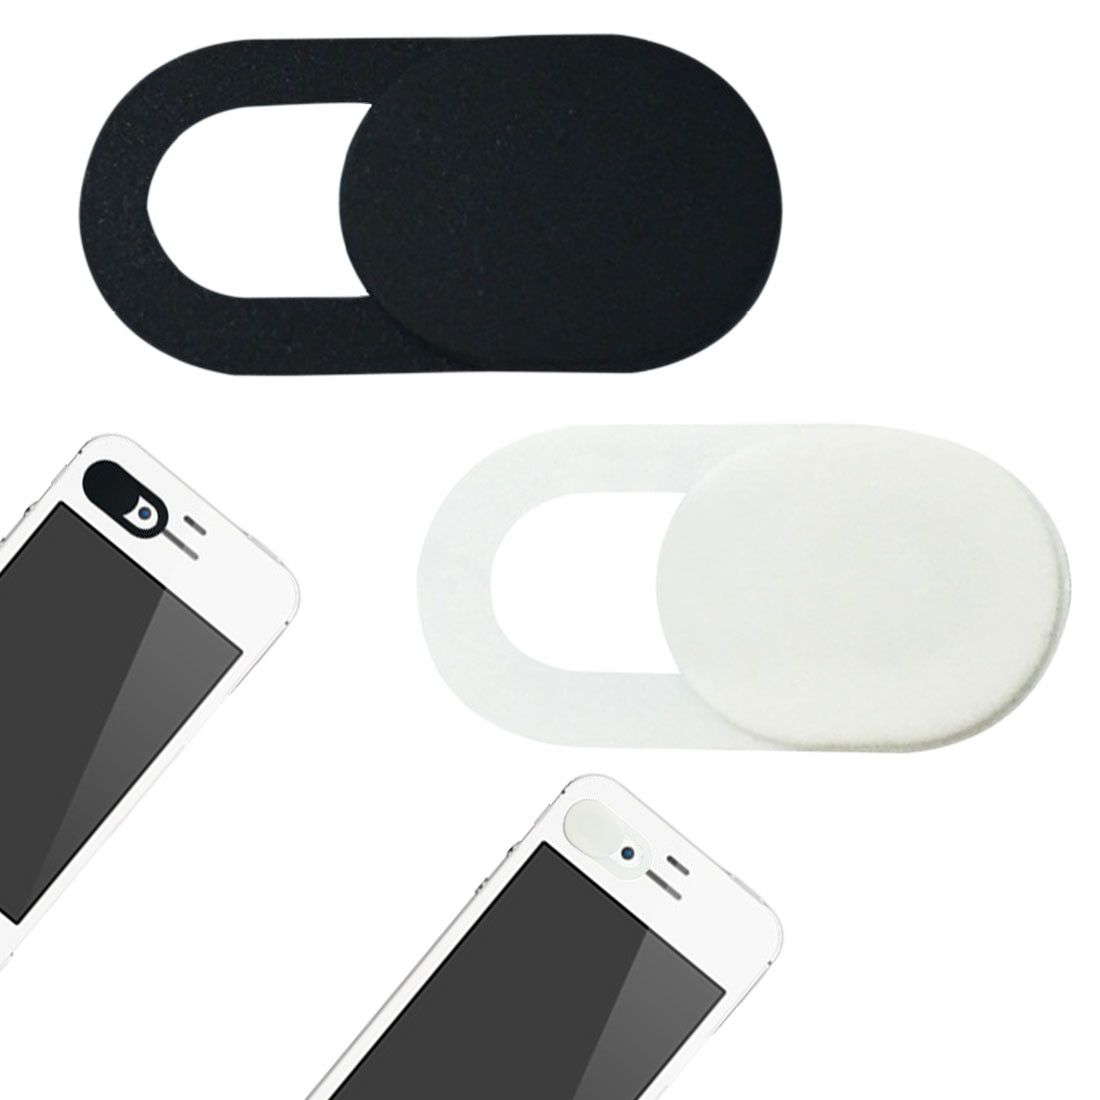 Cover Camera Shutter Lens Privacy Sticker For Phone Laptop iPad Mac Tablet